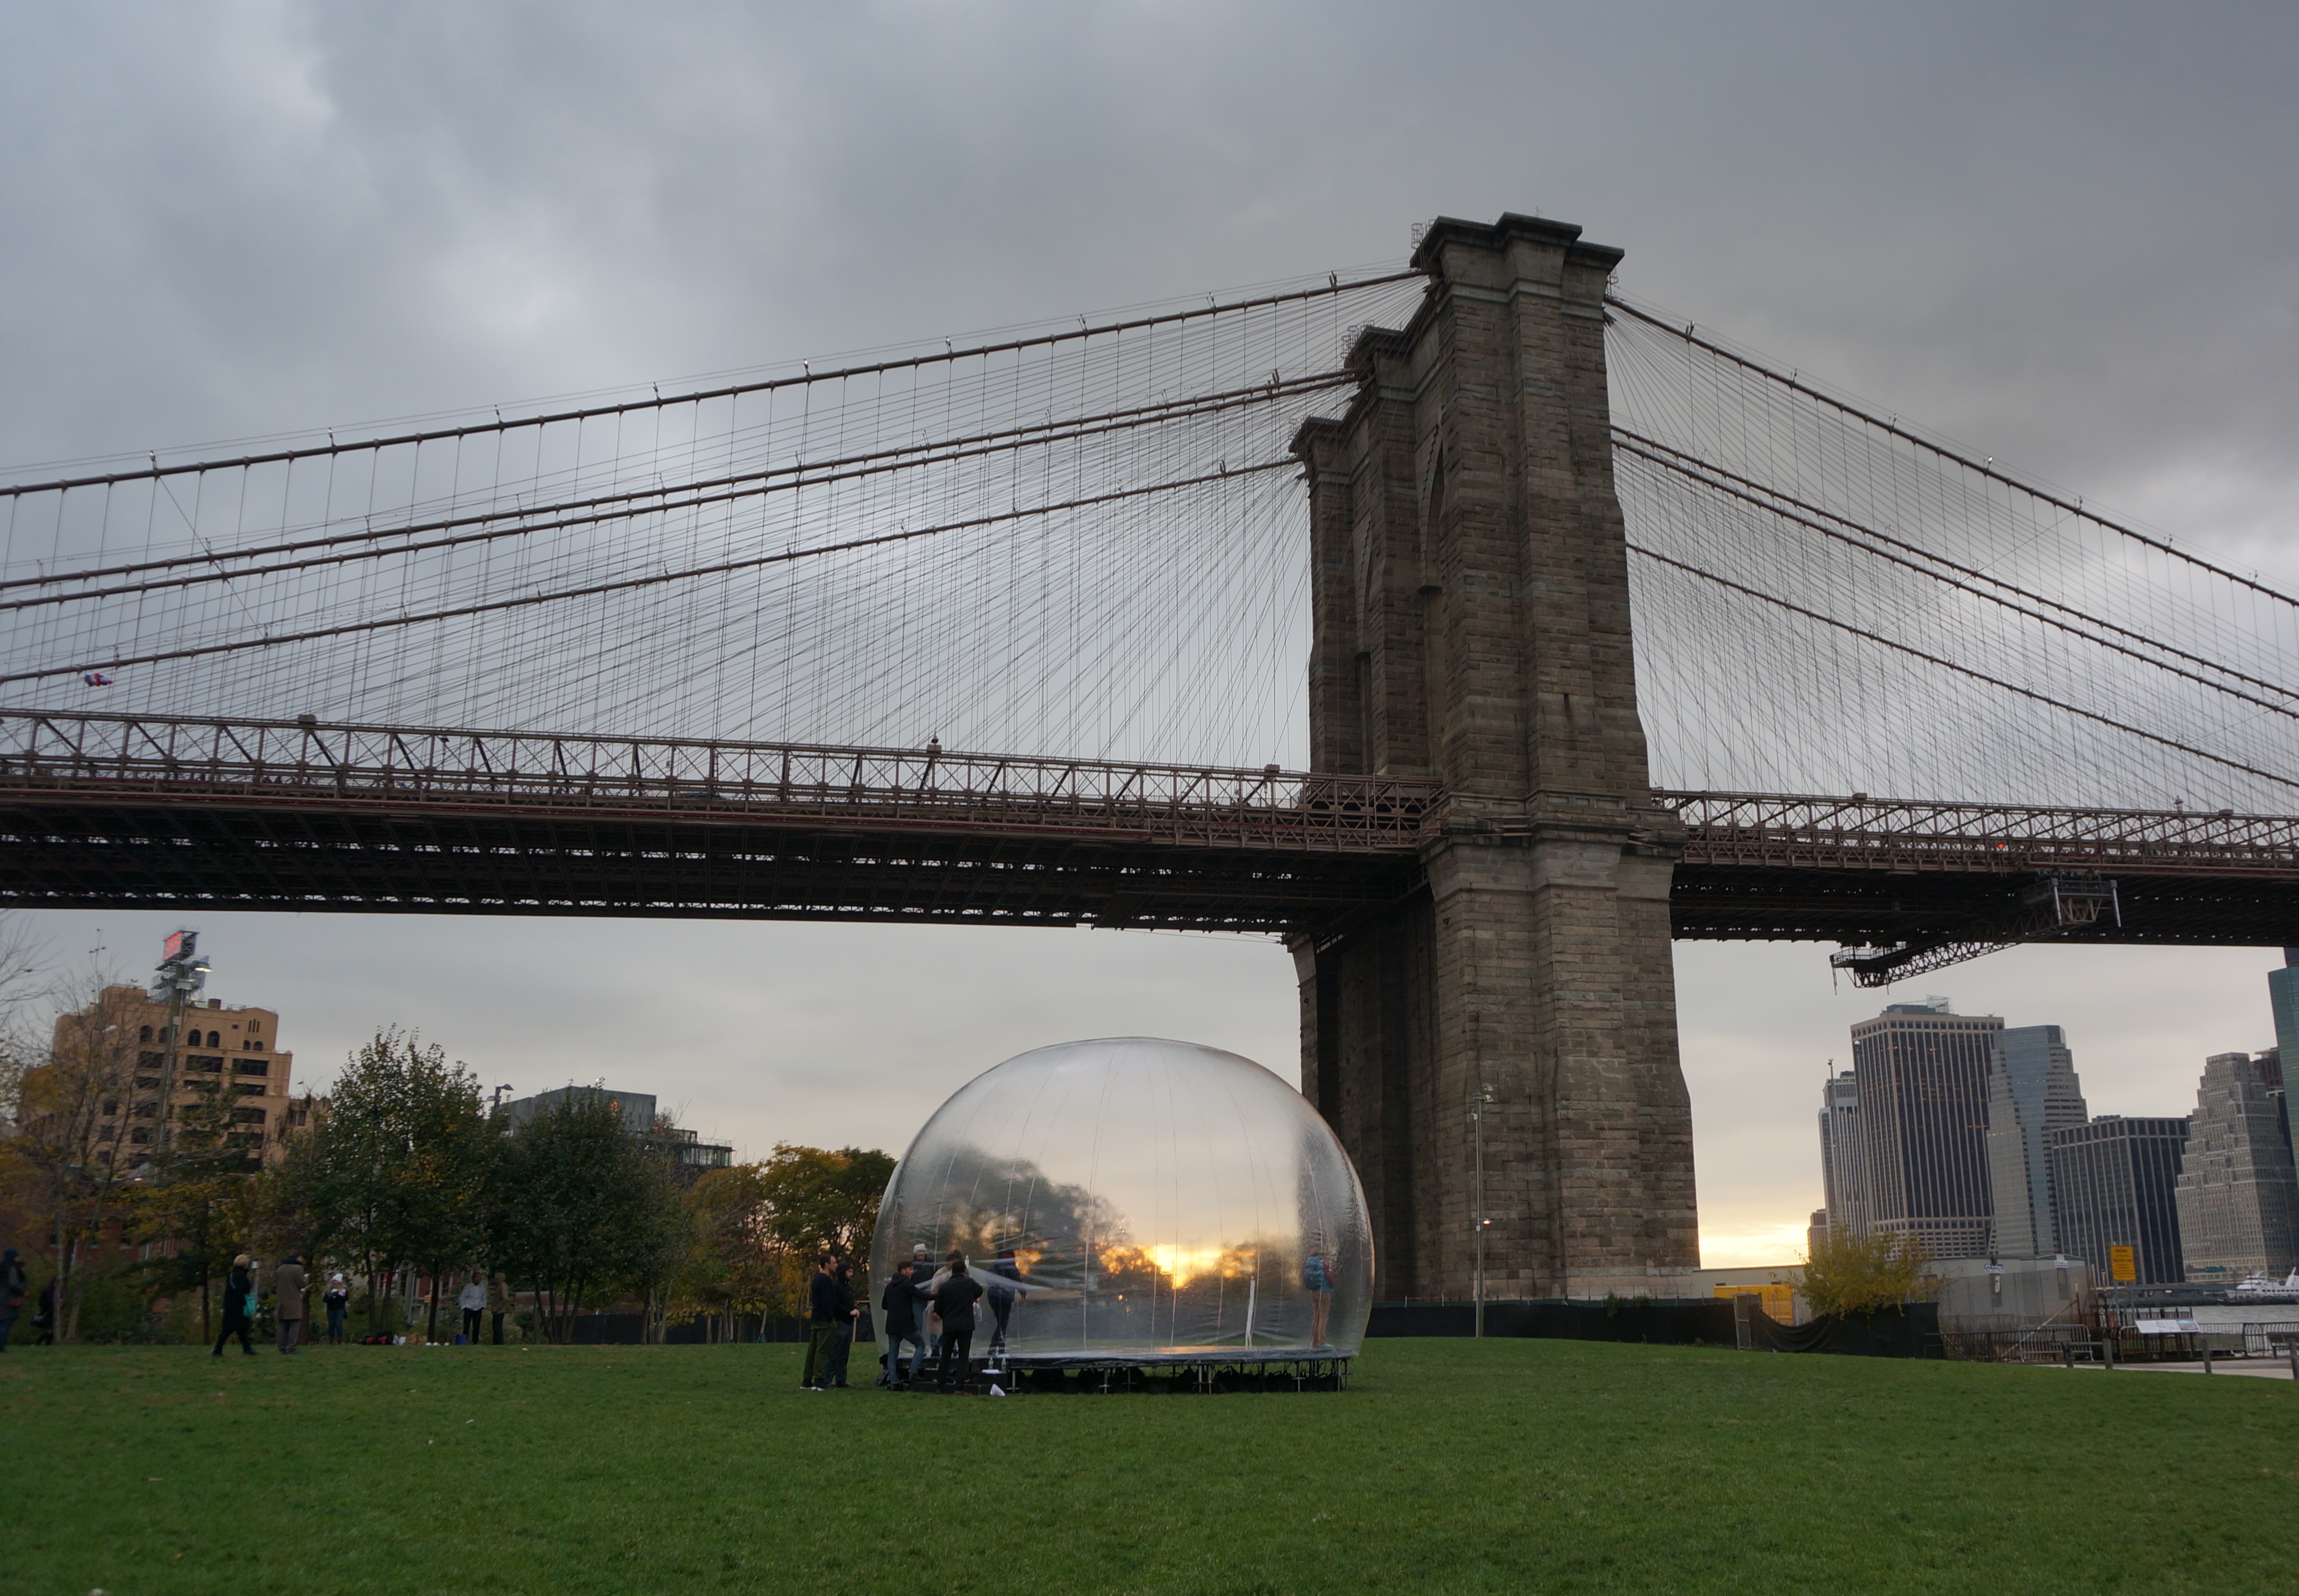 New york clich of the day bubble installation in brooklyn bridge when i saw a giant bubble today in the middle of brooklyn bridge park i had my guesses as to what the hell was going on malvernweather Images